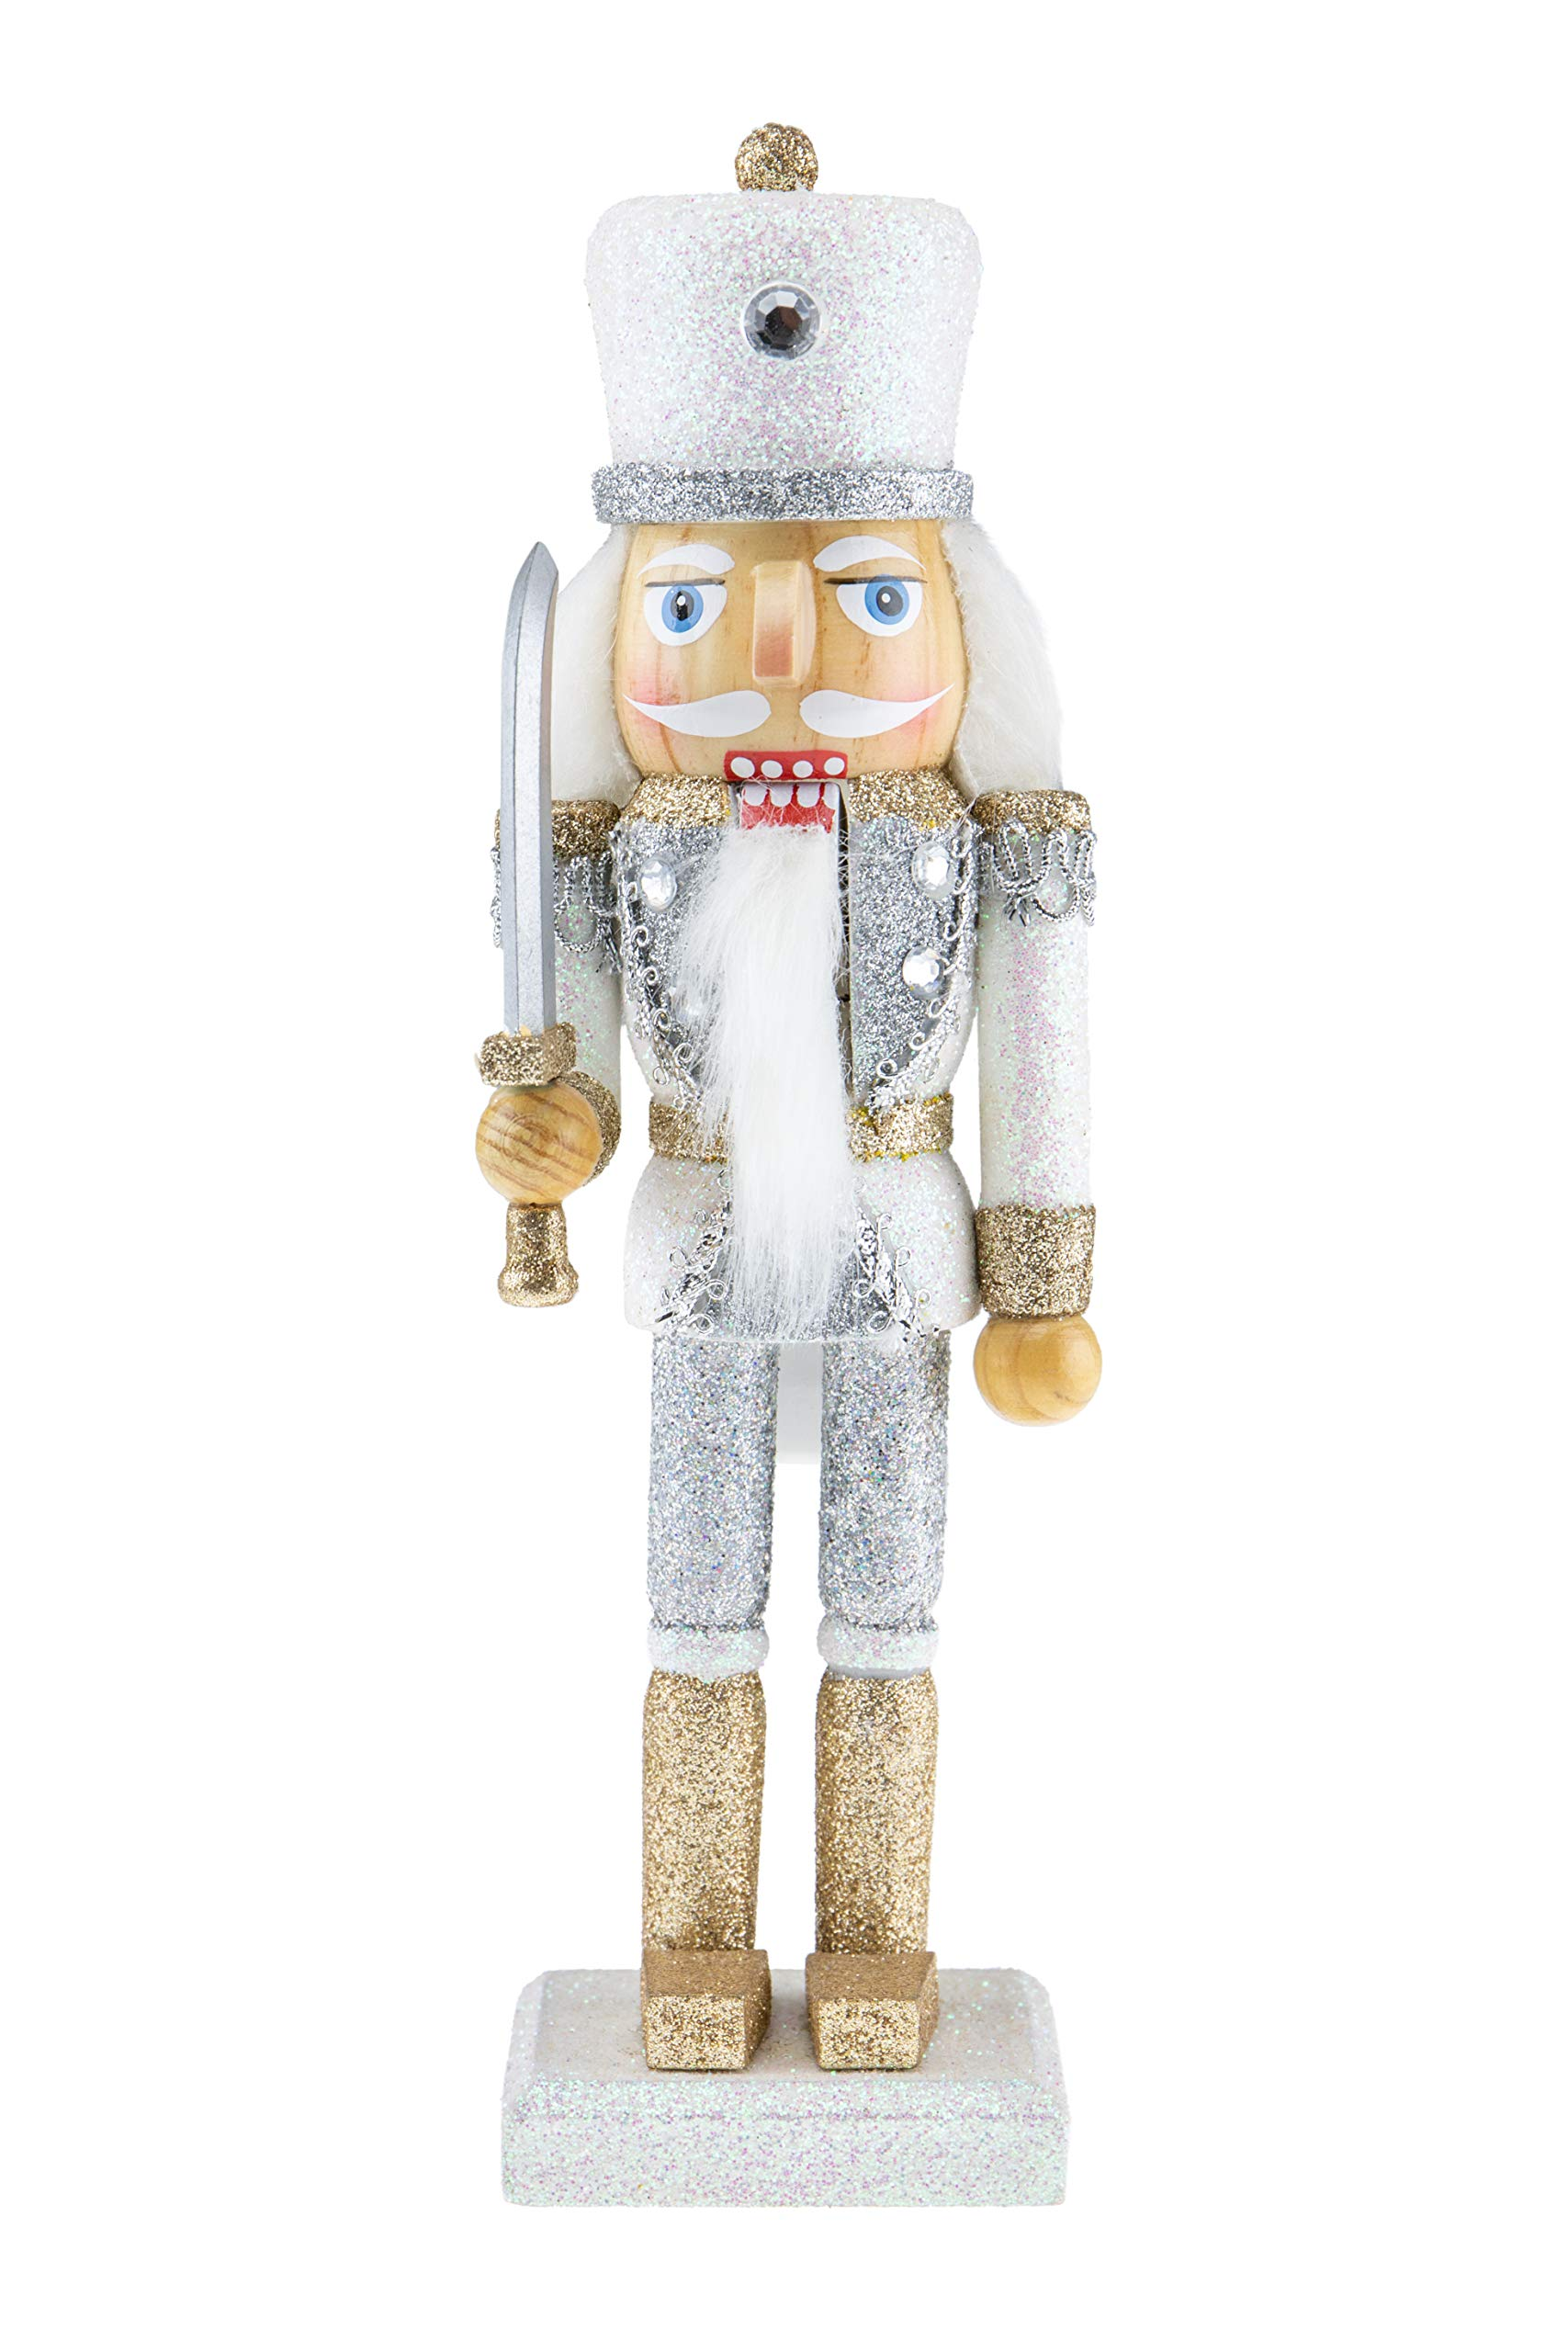 Clever Creations Wooden Glittery Soldier Nutcracker | Gold and Silver Uniform Holding Sword | Great Traditional Festive Christmas Decor | Great for Any Holiday Collection | 10'' Perfect for Shelves by Clever Creations